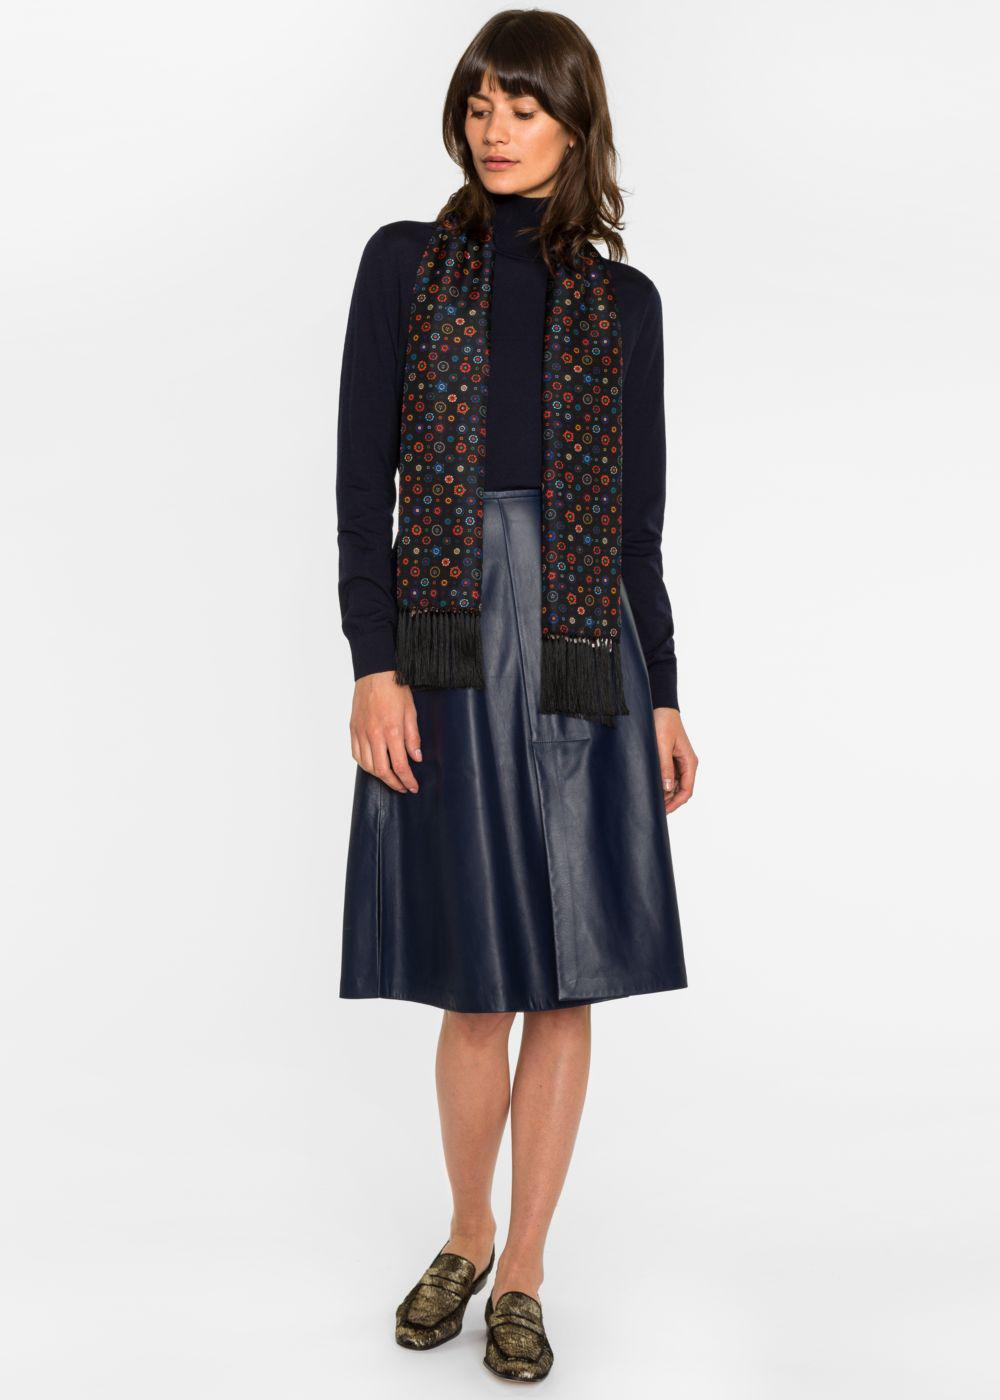 bb9f58acf1 Paul Smith Women's Navy Nappa Leather Skirt With Vents in Blue - Lyst